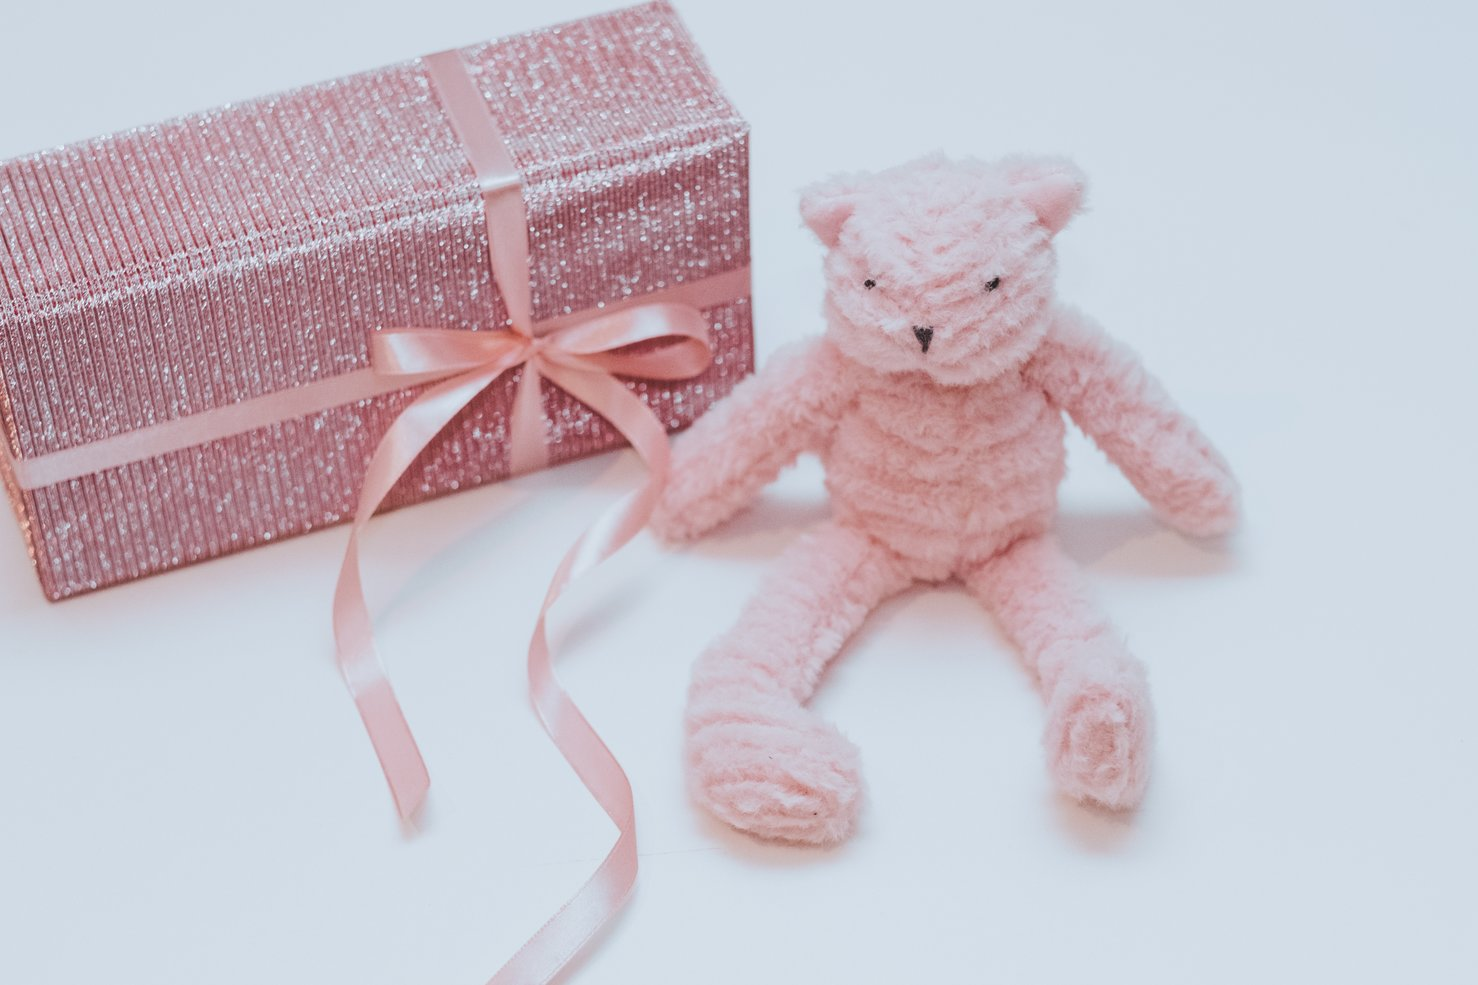 An image showing a teddy bear and a box in gift wrapping. Offering product discounts and free gift wrapping should be part of your Mother's Day marketing campaign.